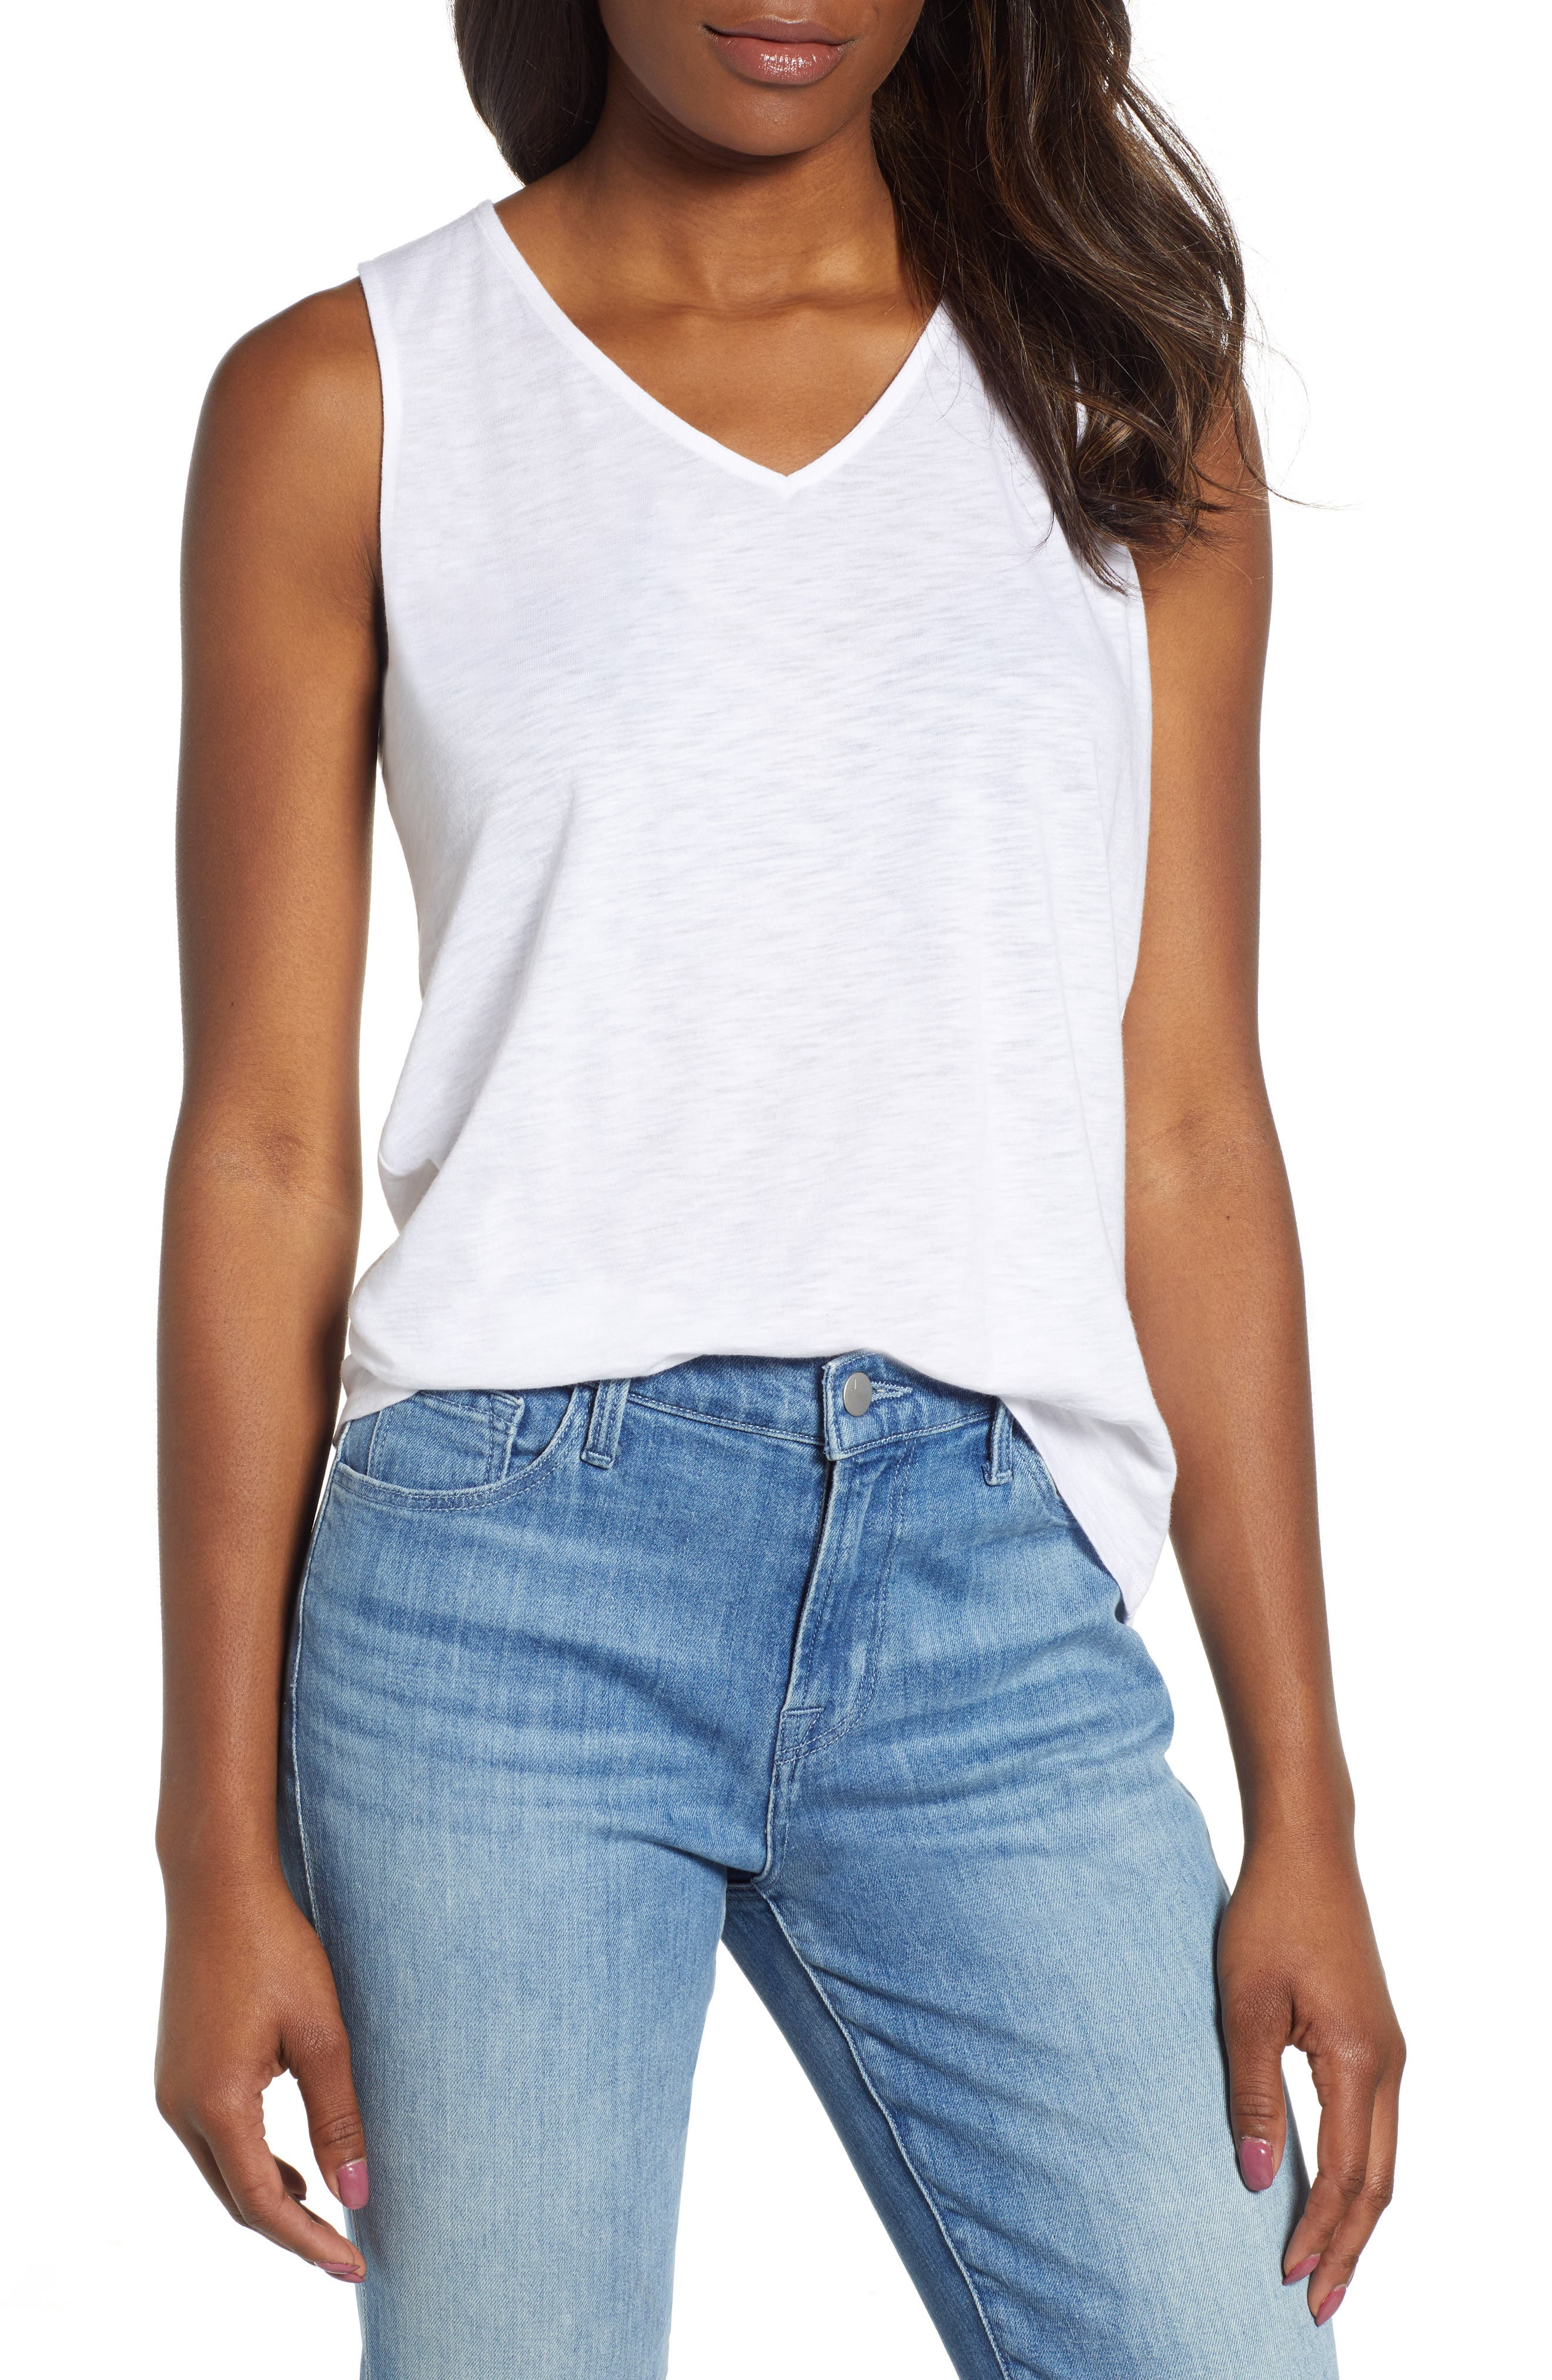 x Hi Sugarplum! Malibu Embroidered Racerback Tank Top, Main, color, WHITE W/ BLACK/ WHITE